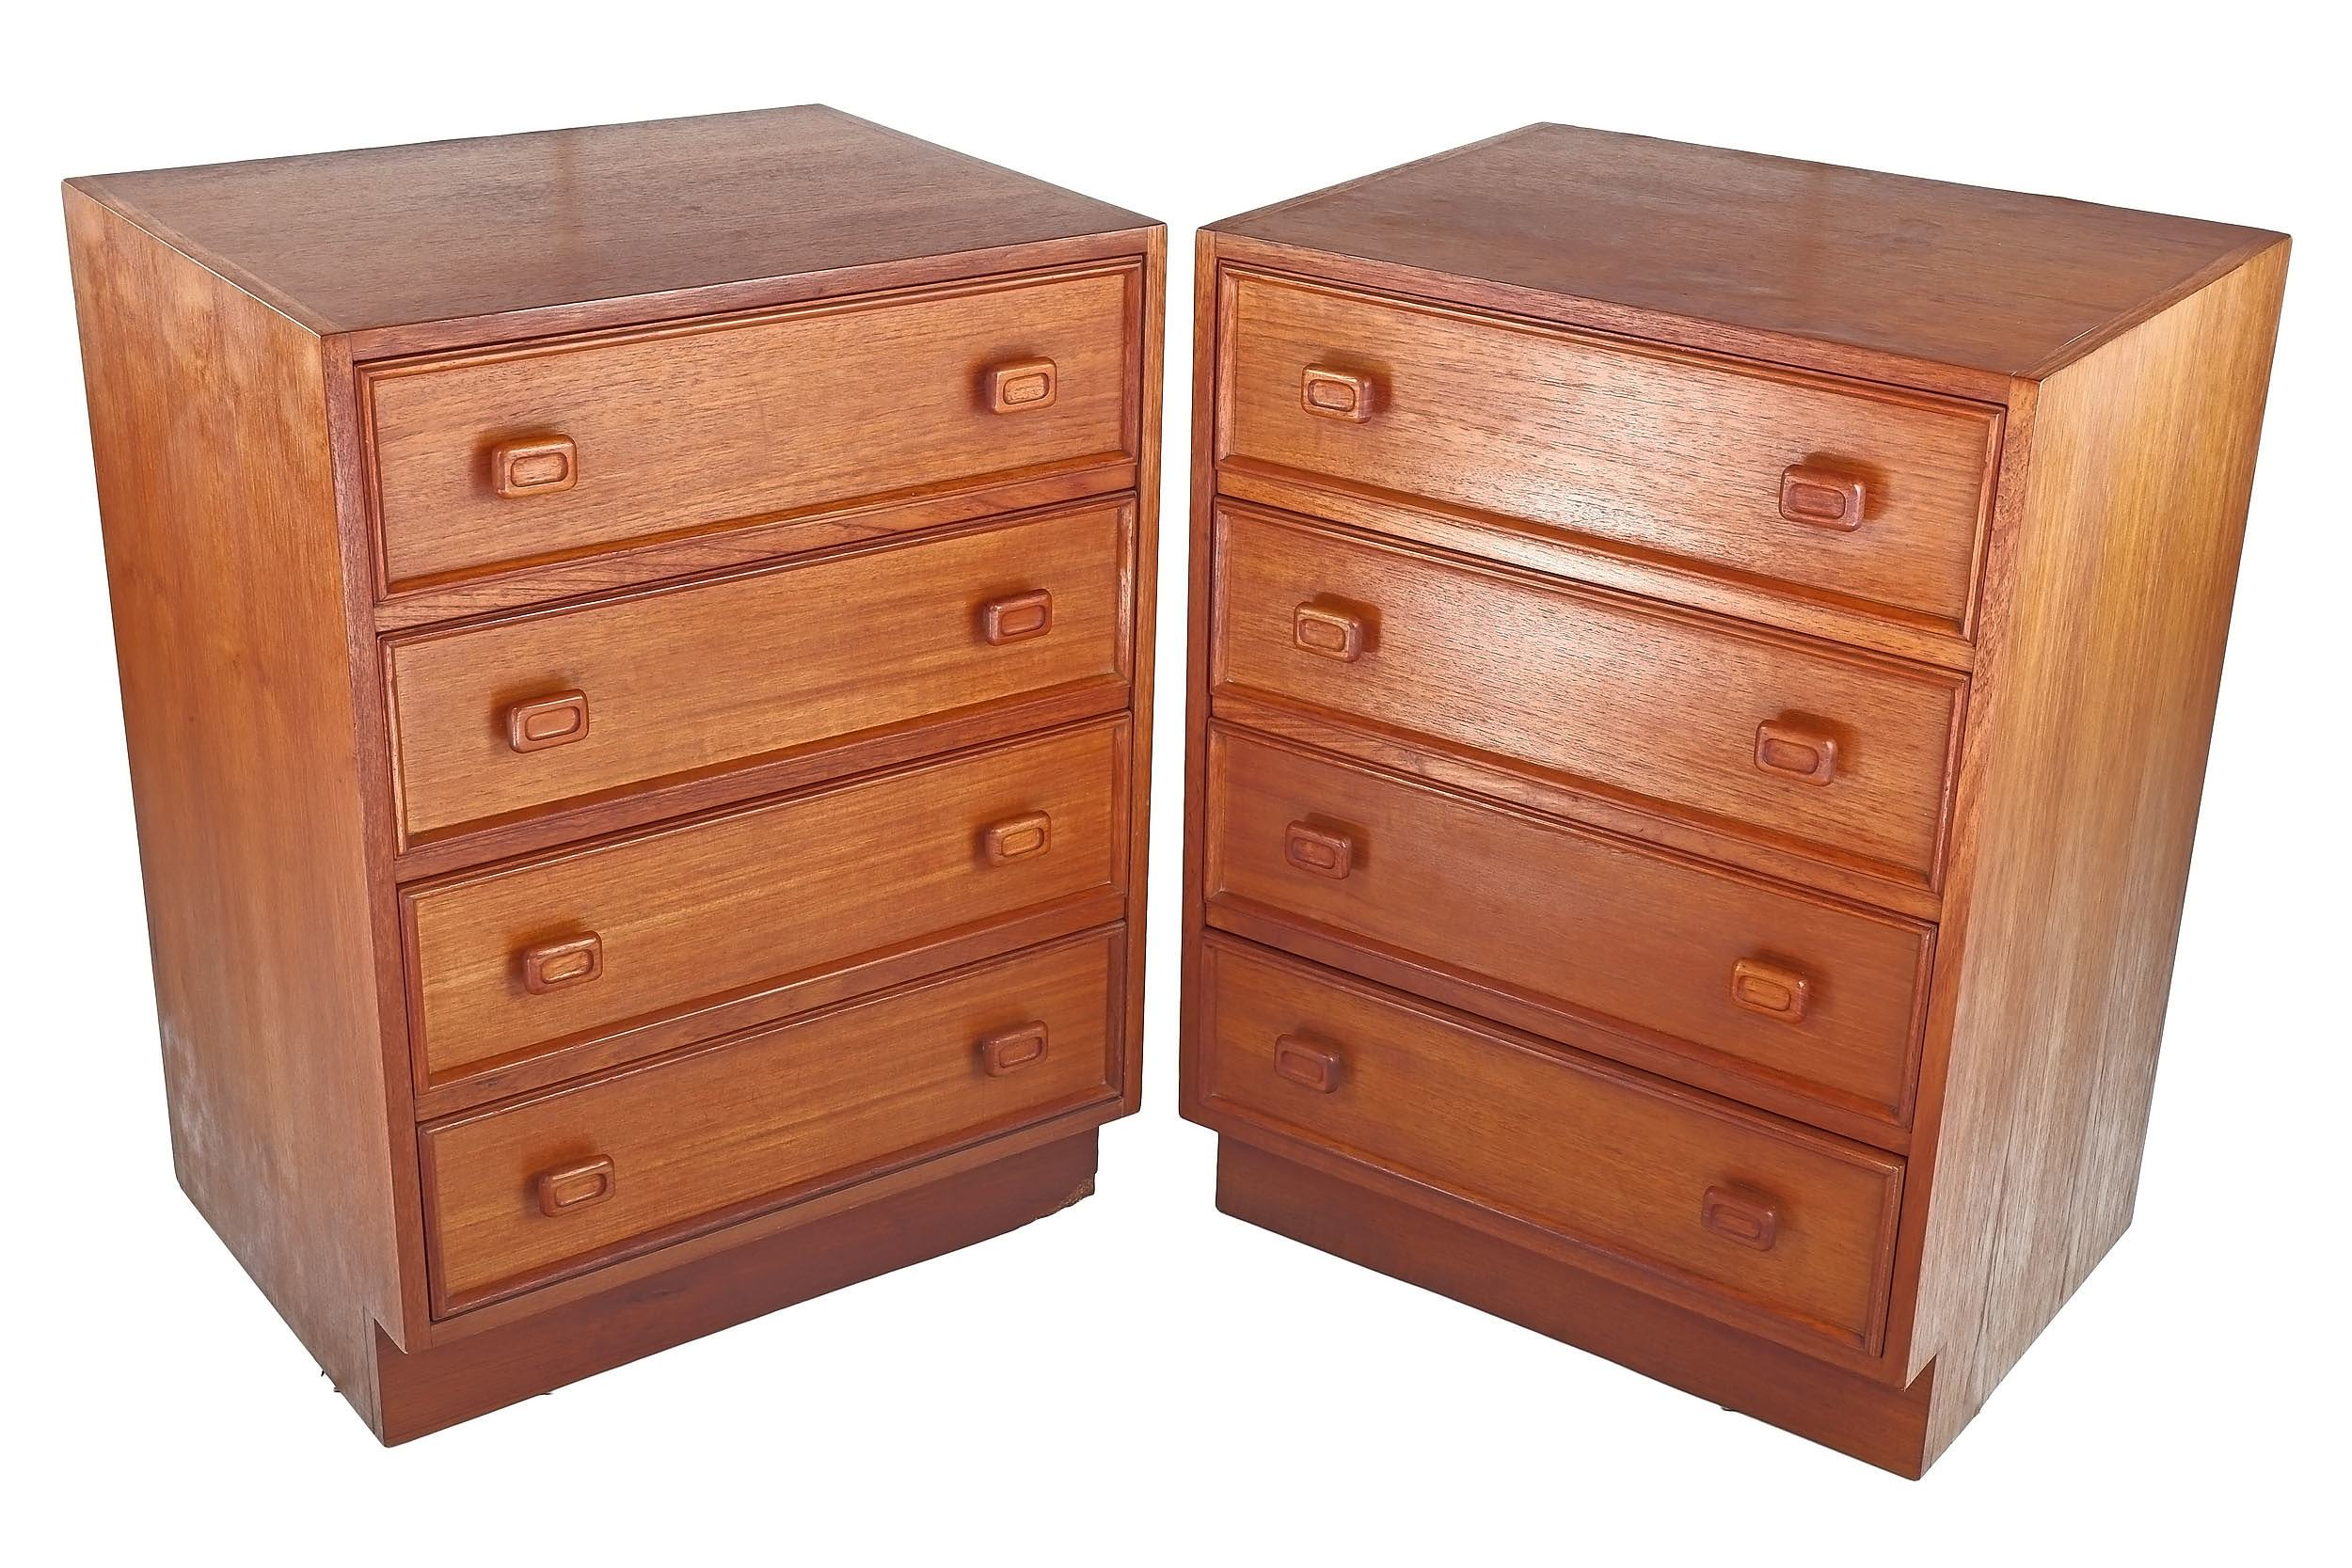 'Pair of Parker Teak Four Drawer Bedside Chests'